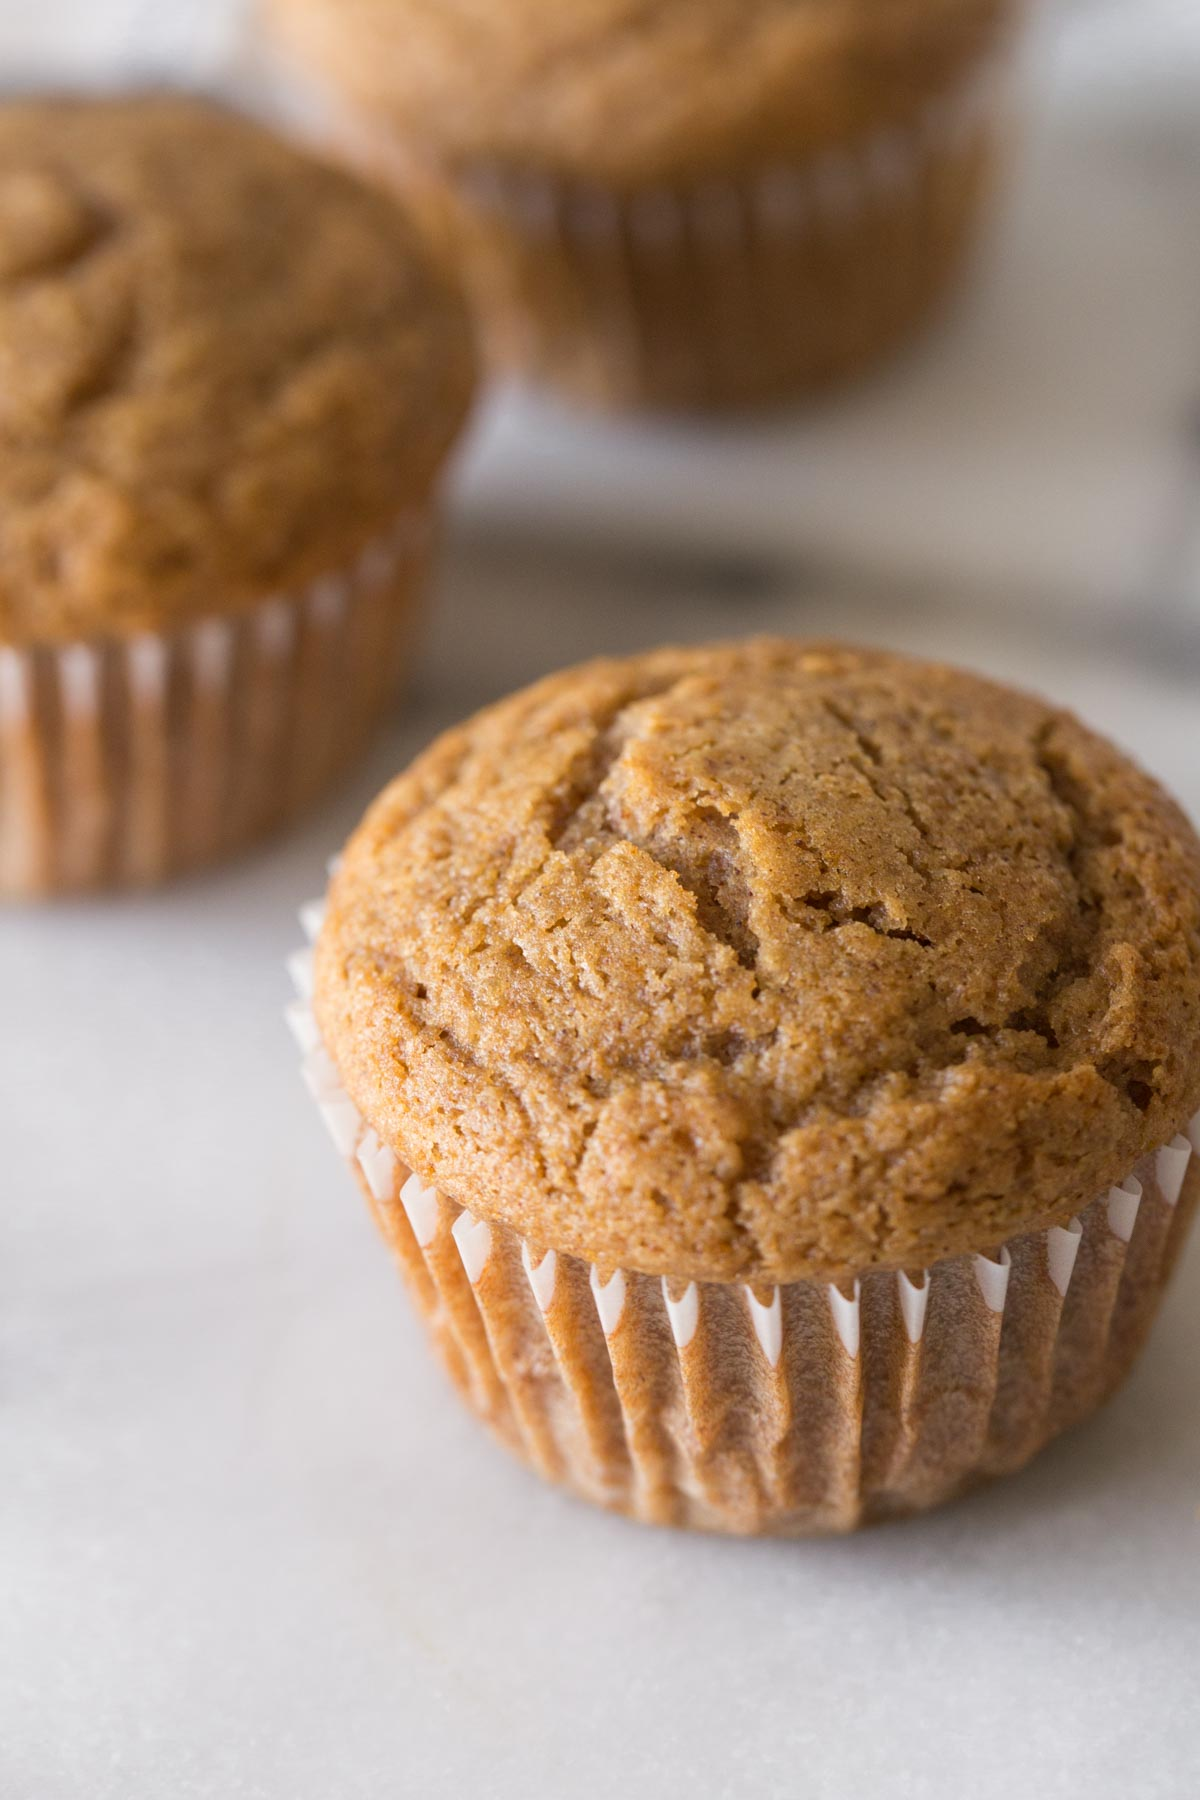 A close up view of the top of a Cinnamon Applesauce Muffin on a white background.